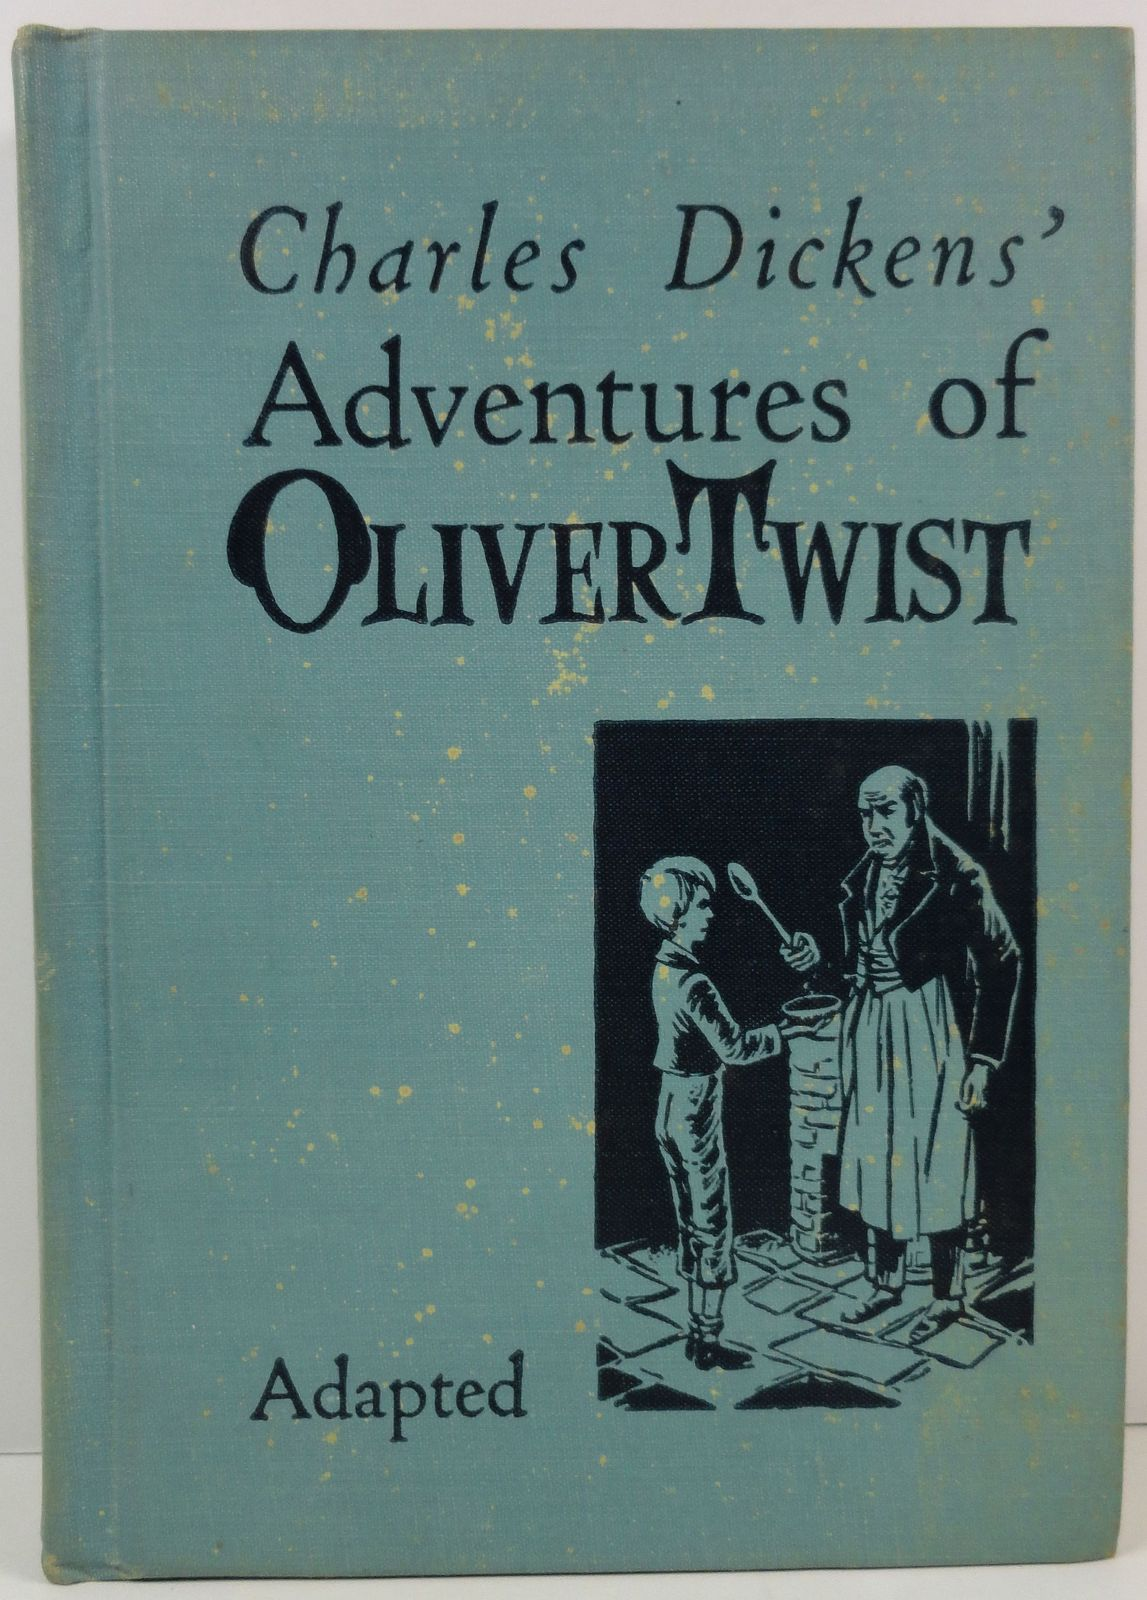 Primary image for Charles Dickens' Adventures of Oliver Twist